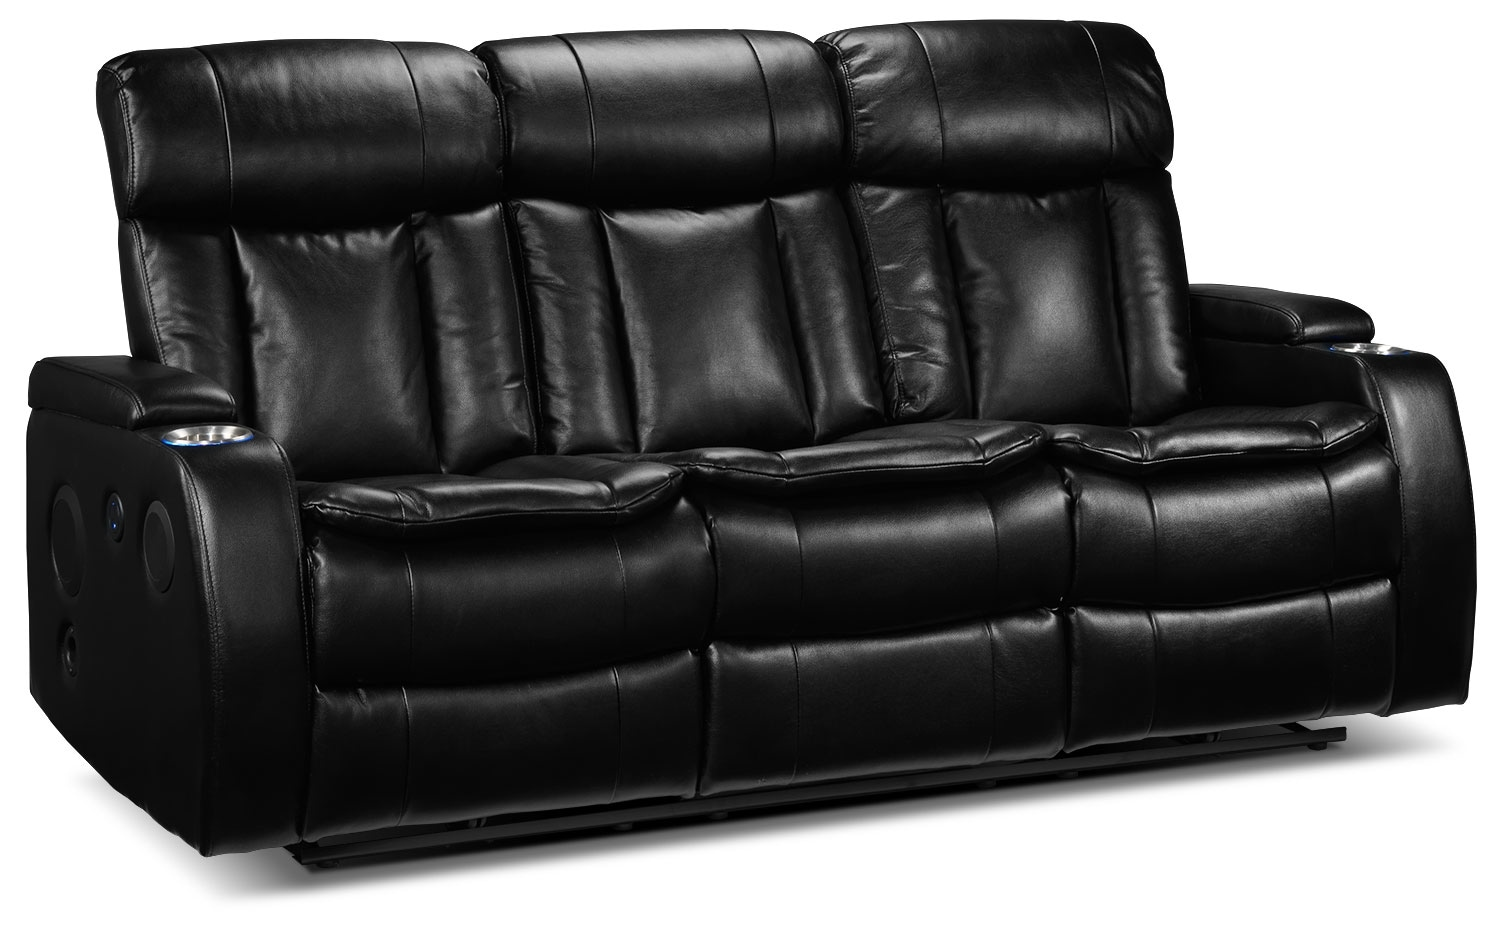 Executive Power Reclining Sofa - Black